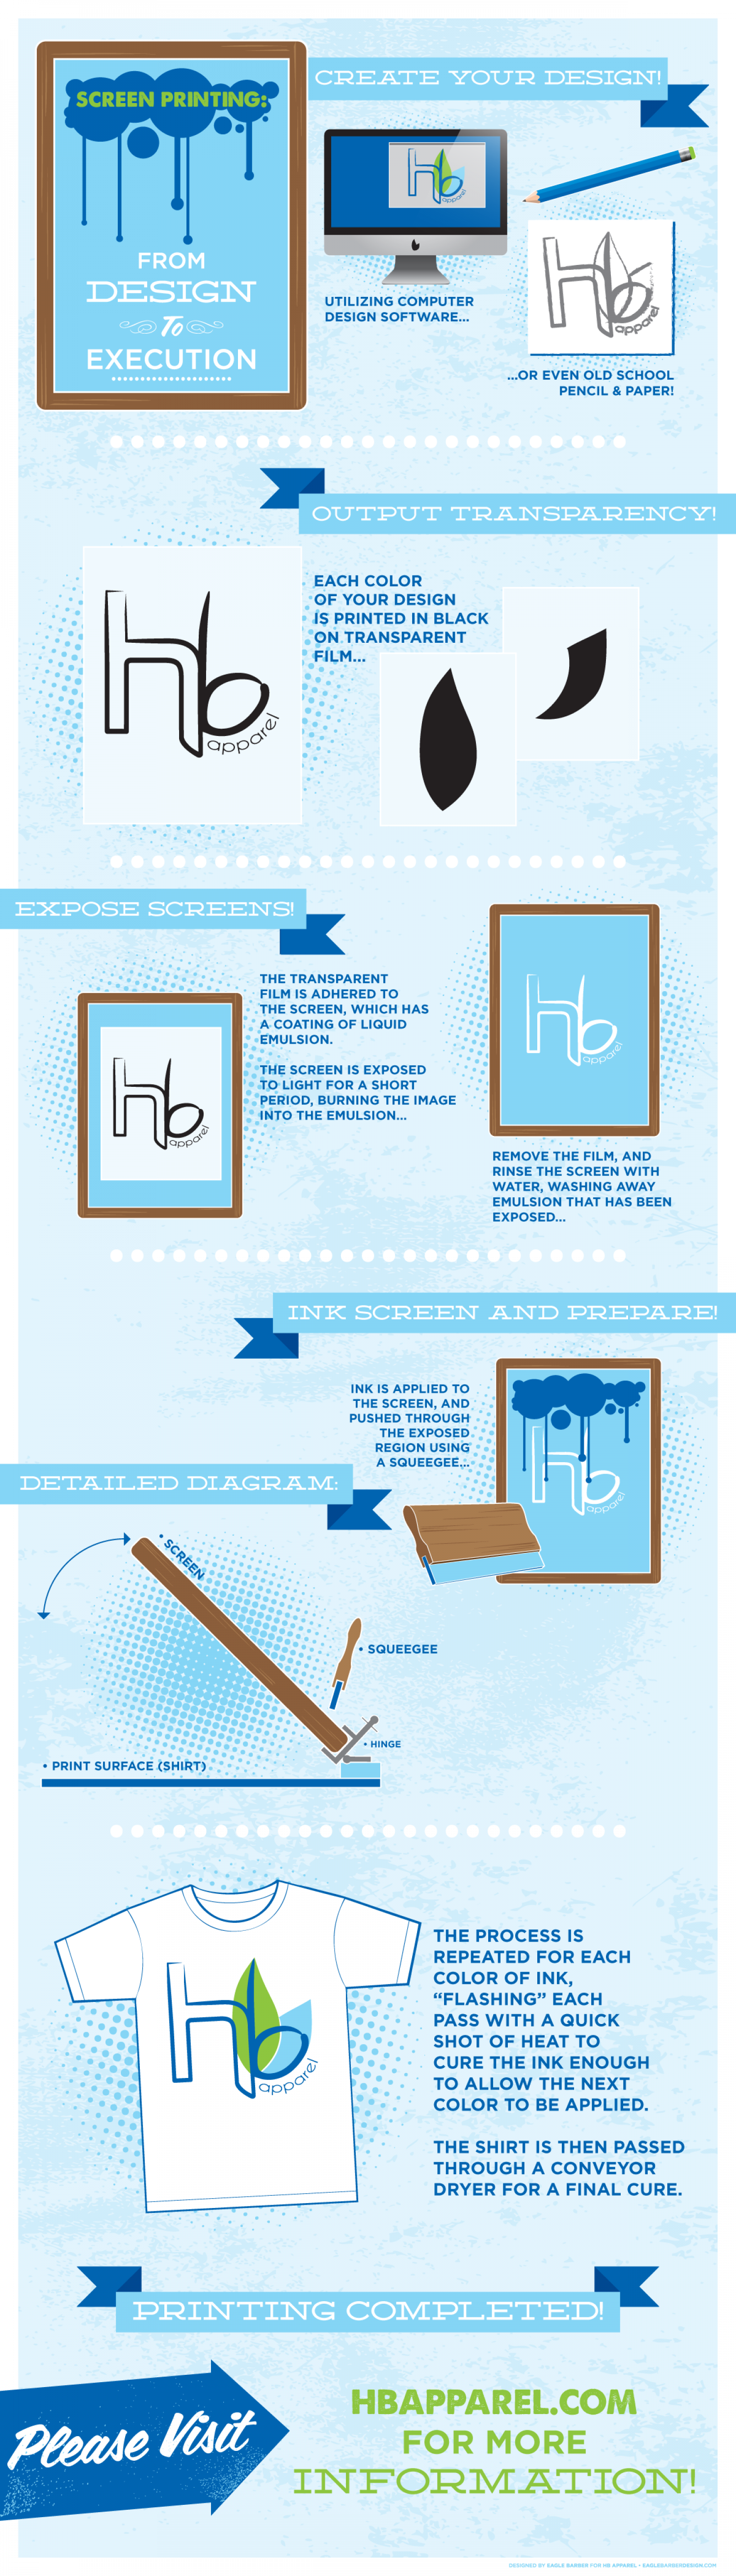 Screen Printing • From Design to Execution Infographic